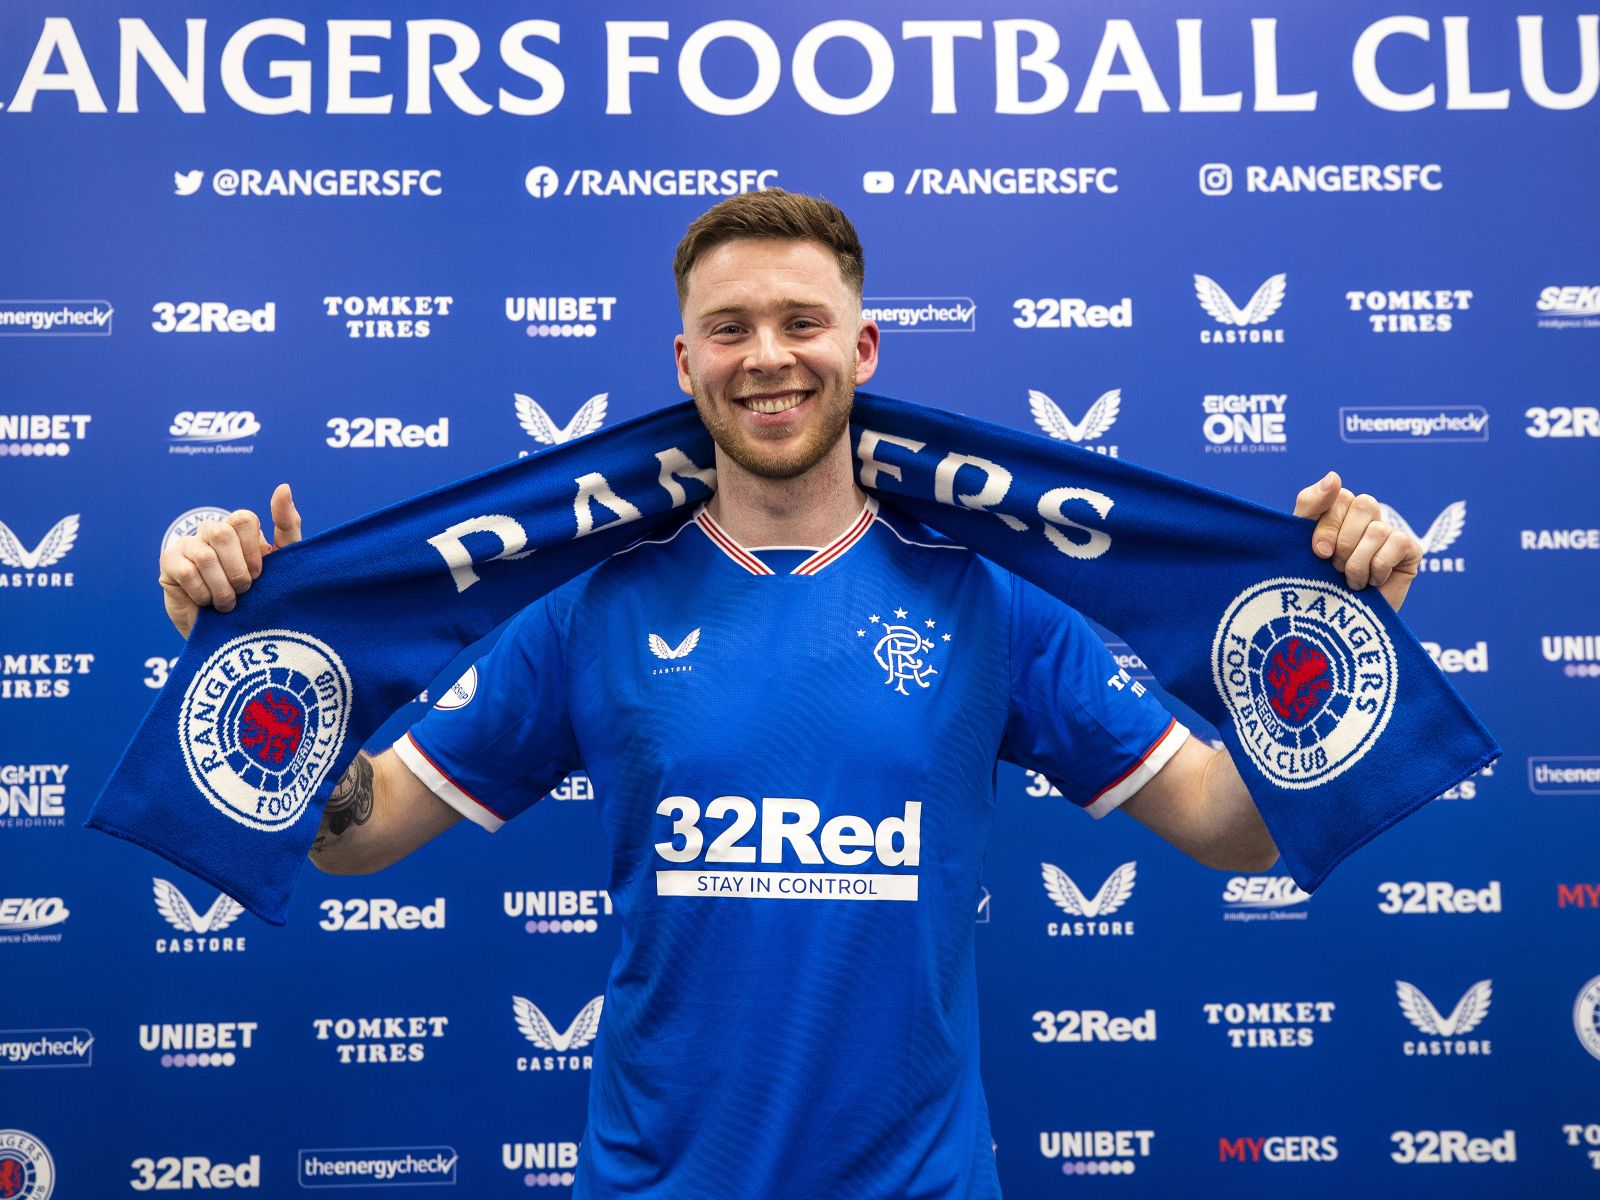 Image Credit: Rangers Website